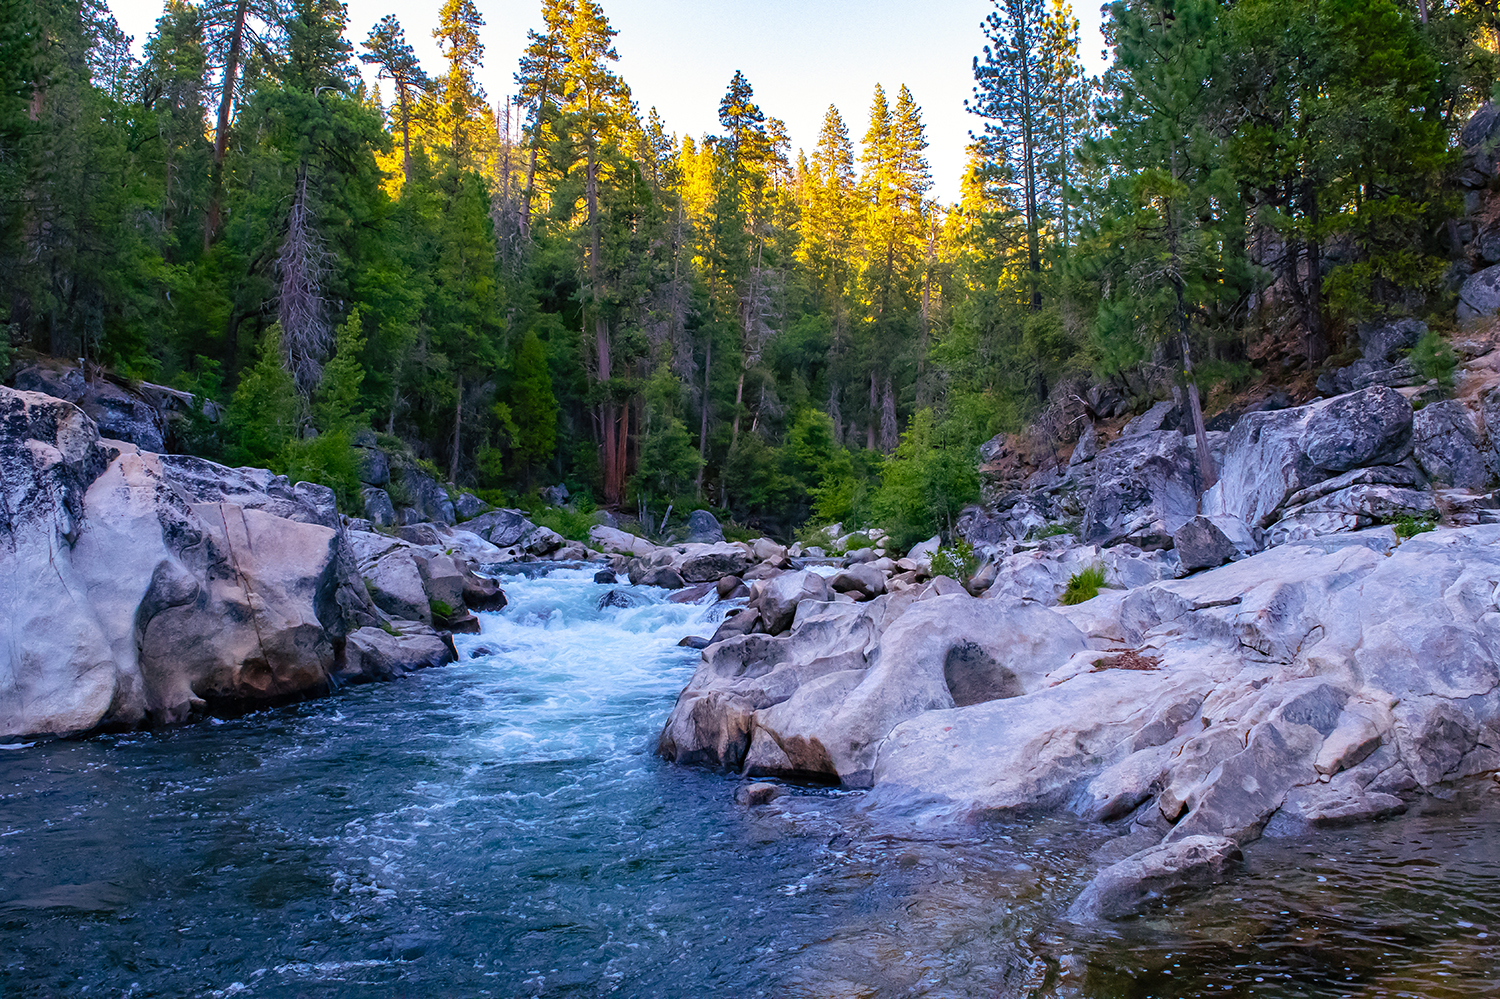 North Fork of Stanislaus River